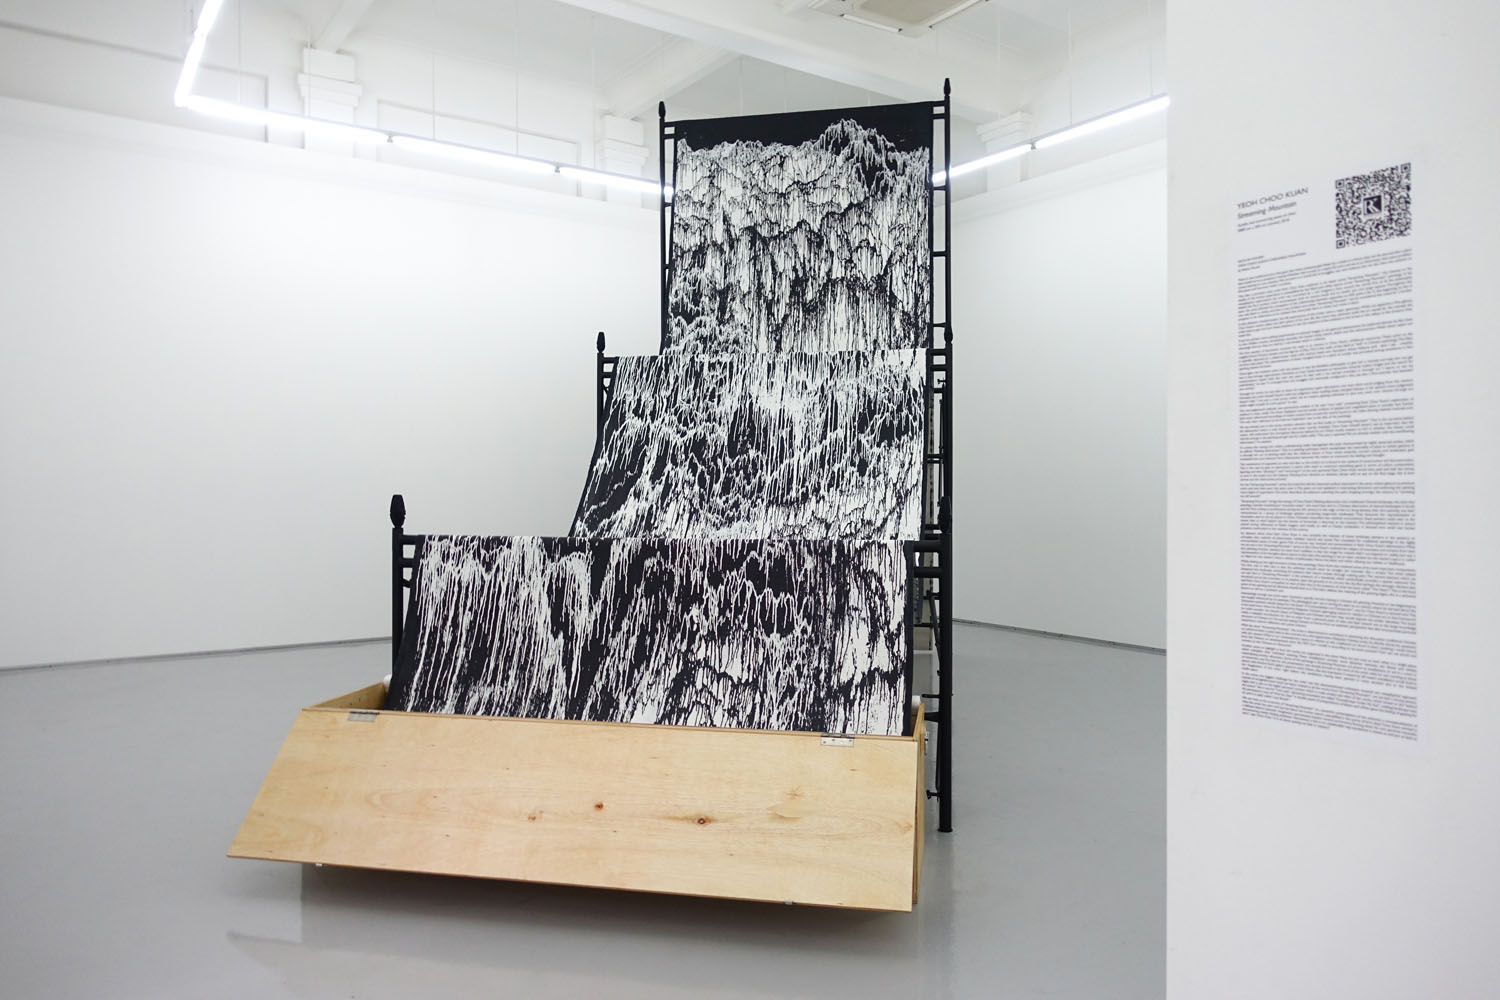 Yeoh Choo Kuan – Streaming Mountain, Installation